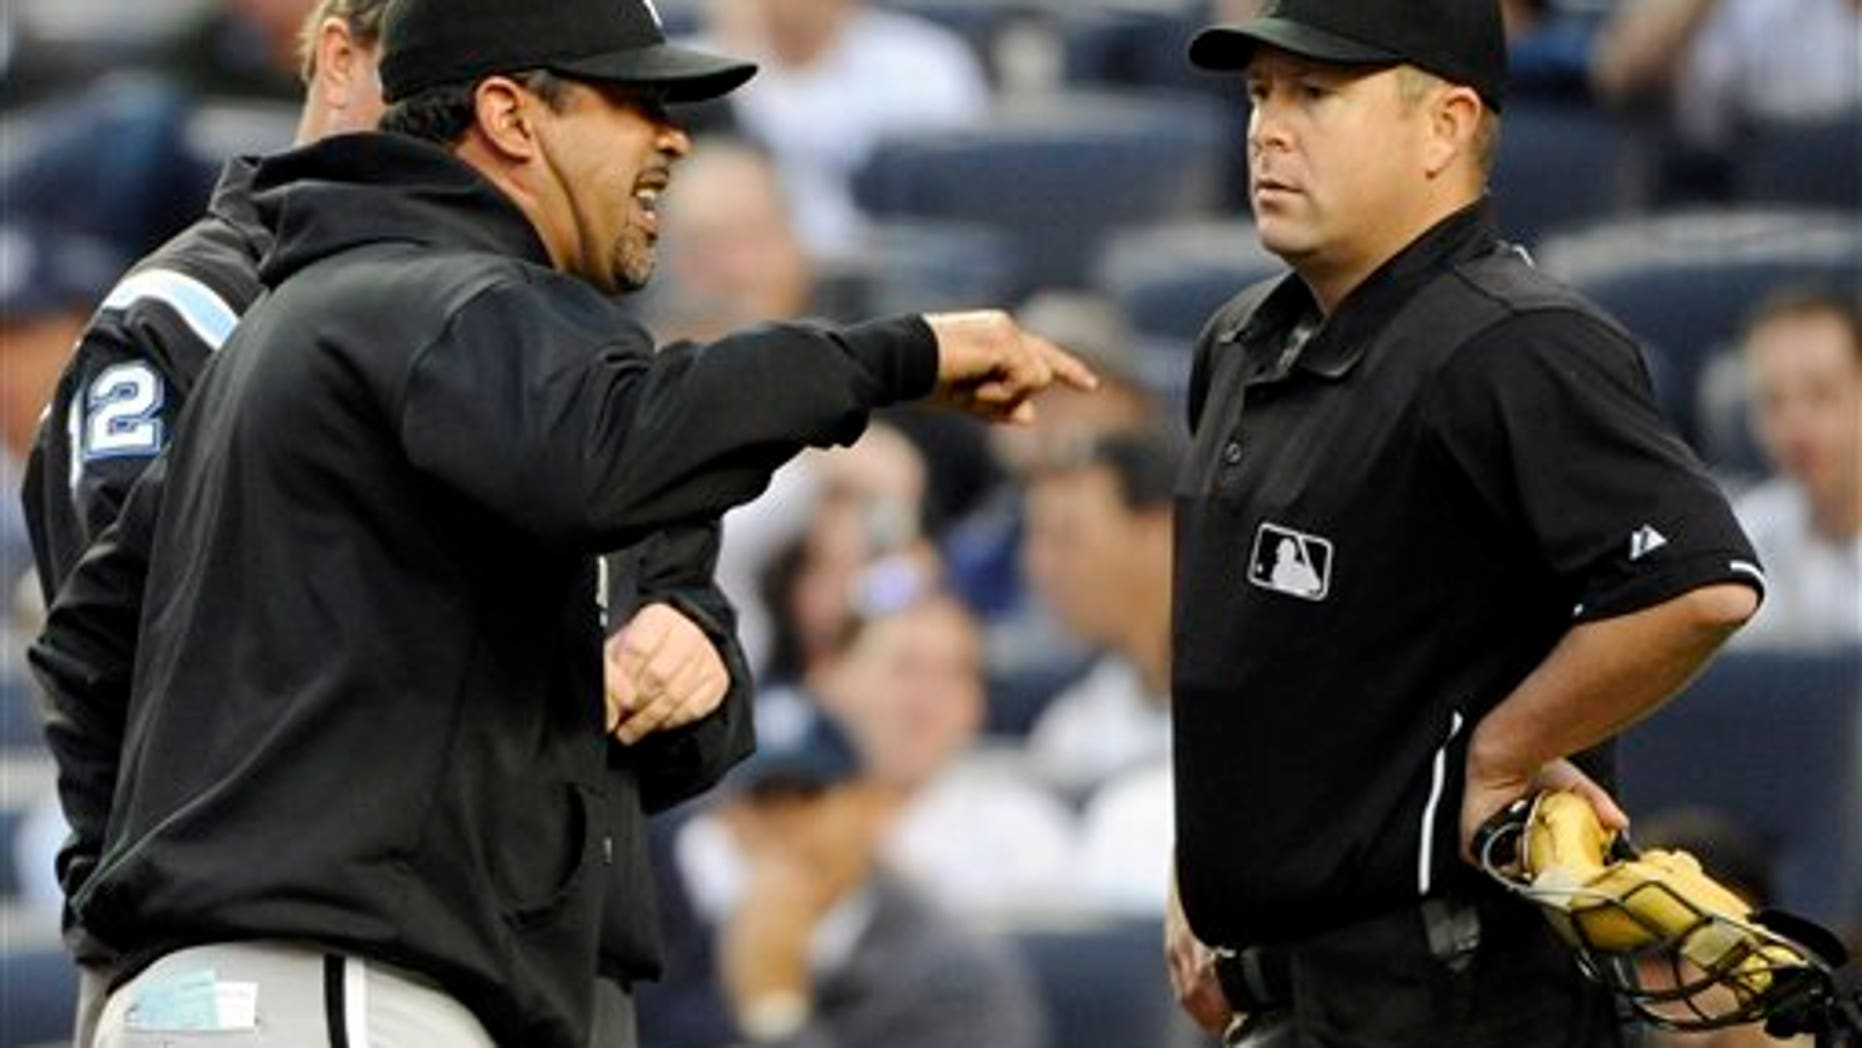 Chicago White Sox mamager Ozzie Guillen, left, argues with home plate umpire Todd Tichenor during the first inning of a baseball game against the New York Yankees, Wednesday, April 27, 2011, at Yankee Stadium in New York. (AP Photo/Bill Kostroun)